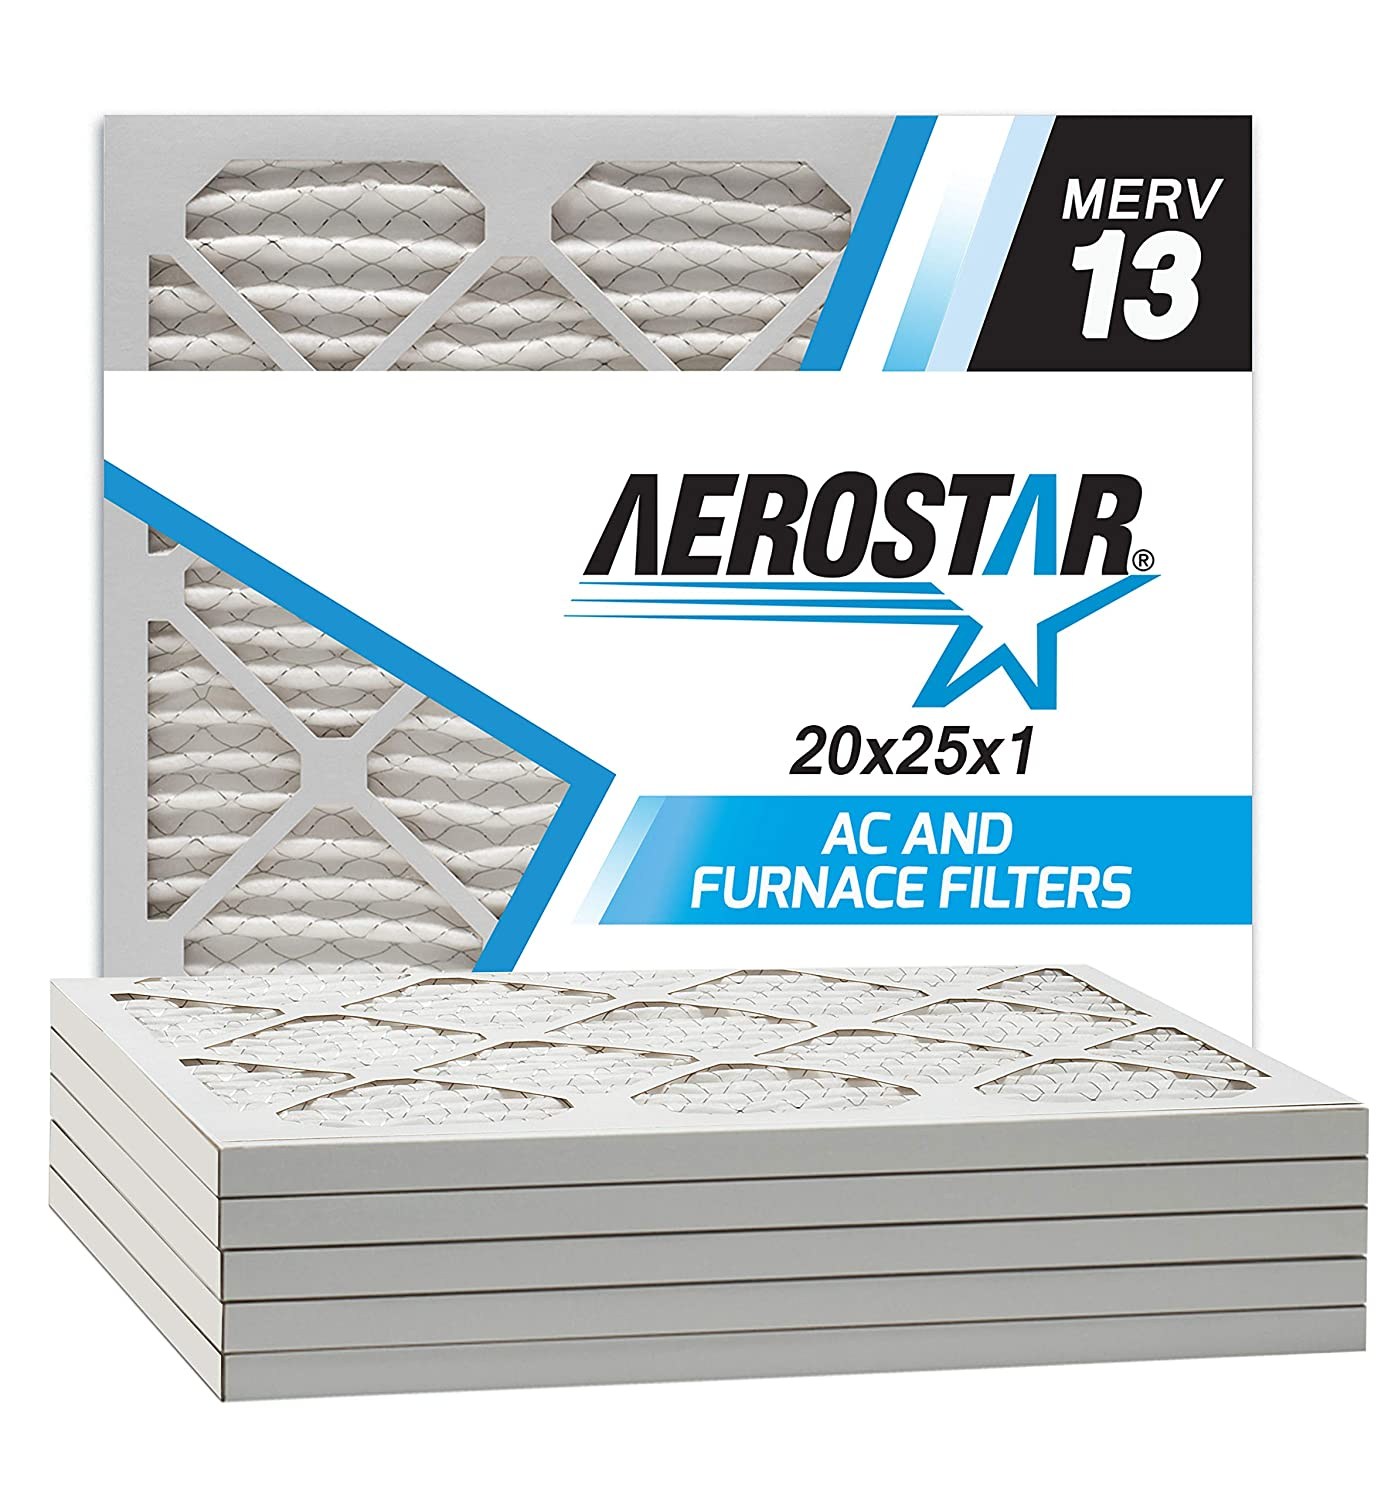 Aerostar 20x25x1 MERV 13 Pleated Air Filter, Made in the USA, 6-Pack